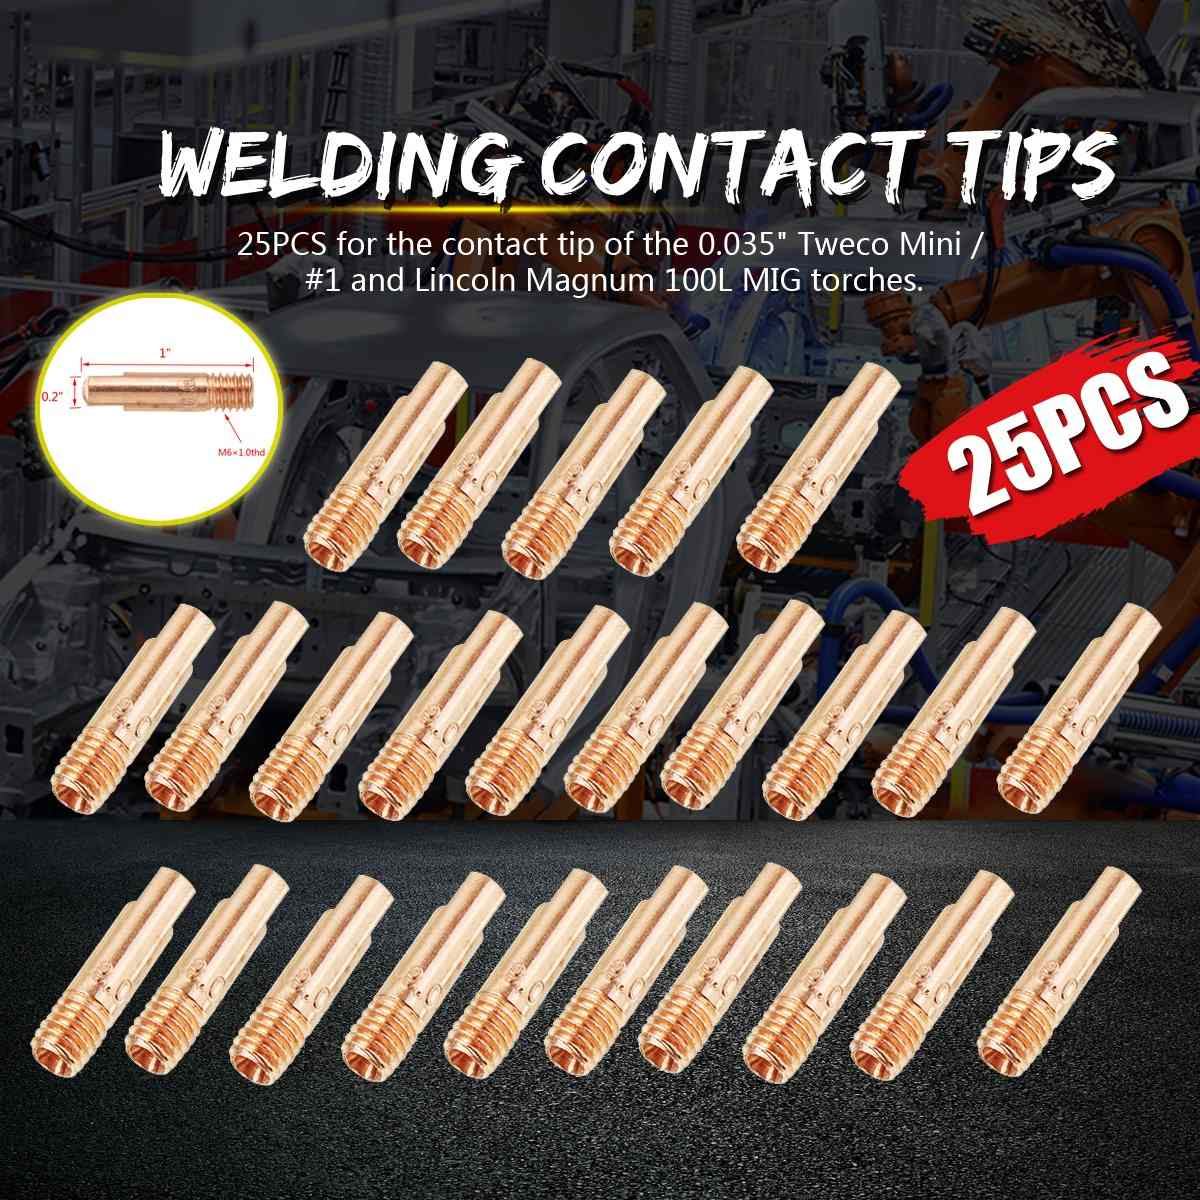 25 Contact Tips 11-35 for Tweco Mini//#1 /& Lincoln Magnum 100L MIG Welding Guns